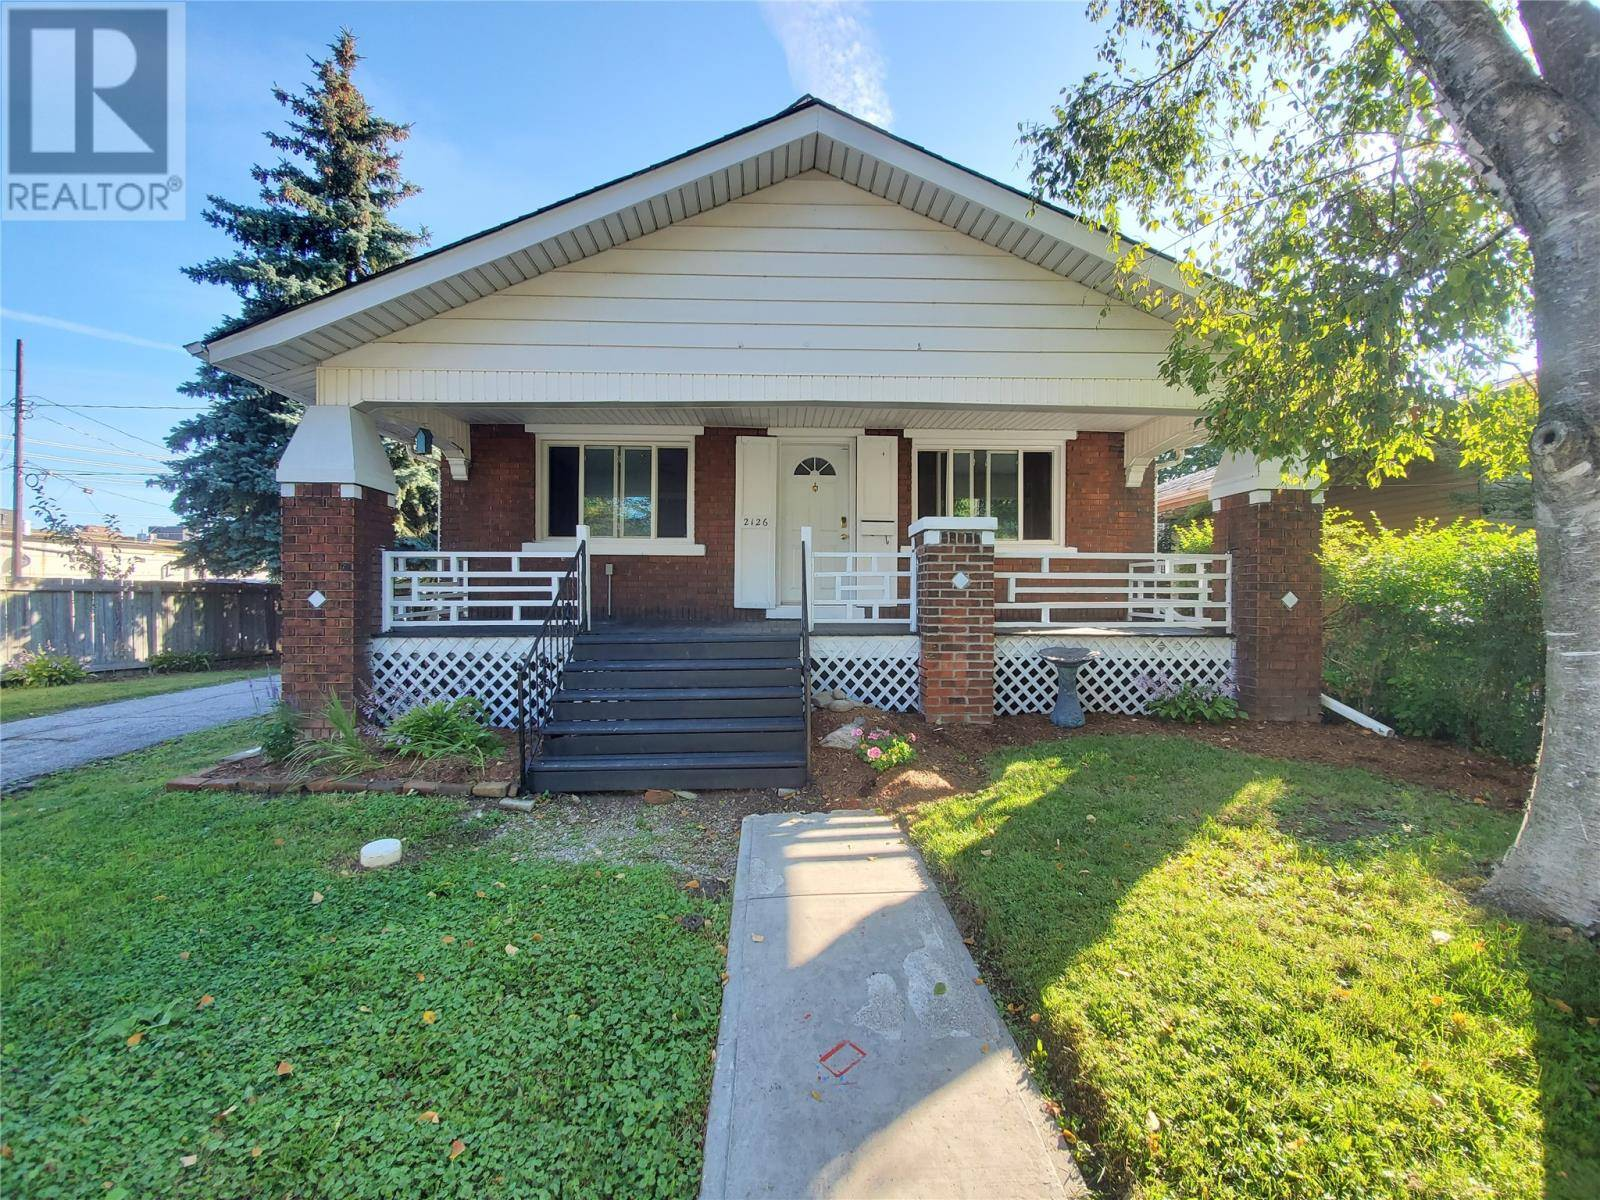 House for sale at 2126 York  Windsor Ontario - MLS: 19025596